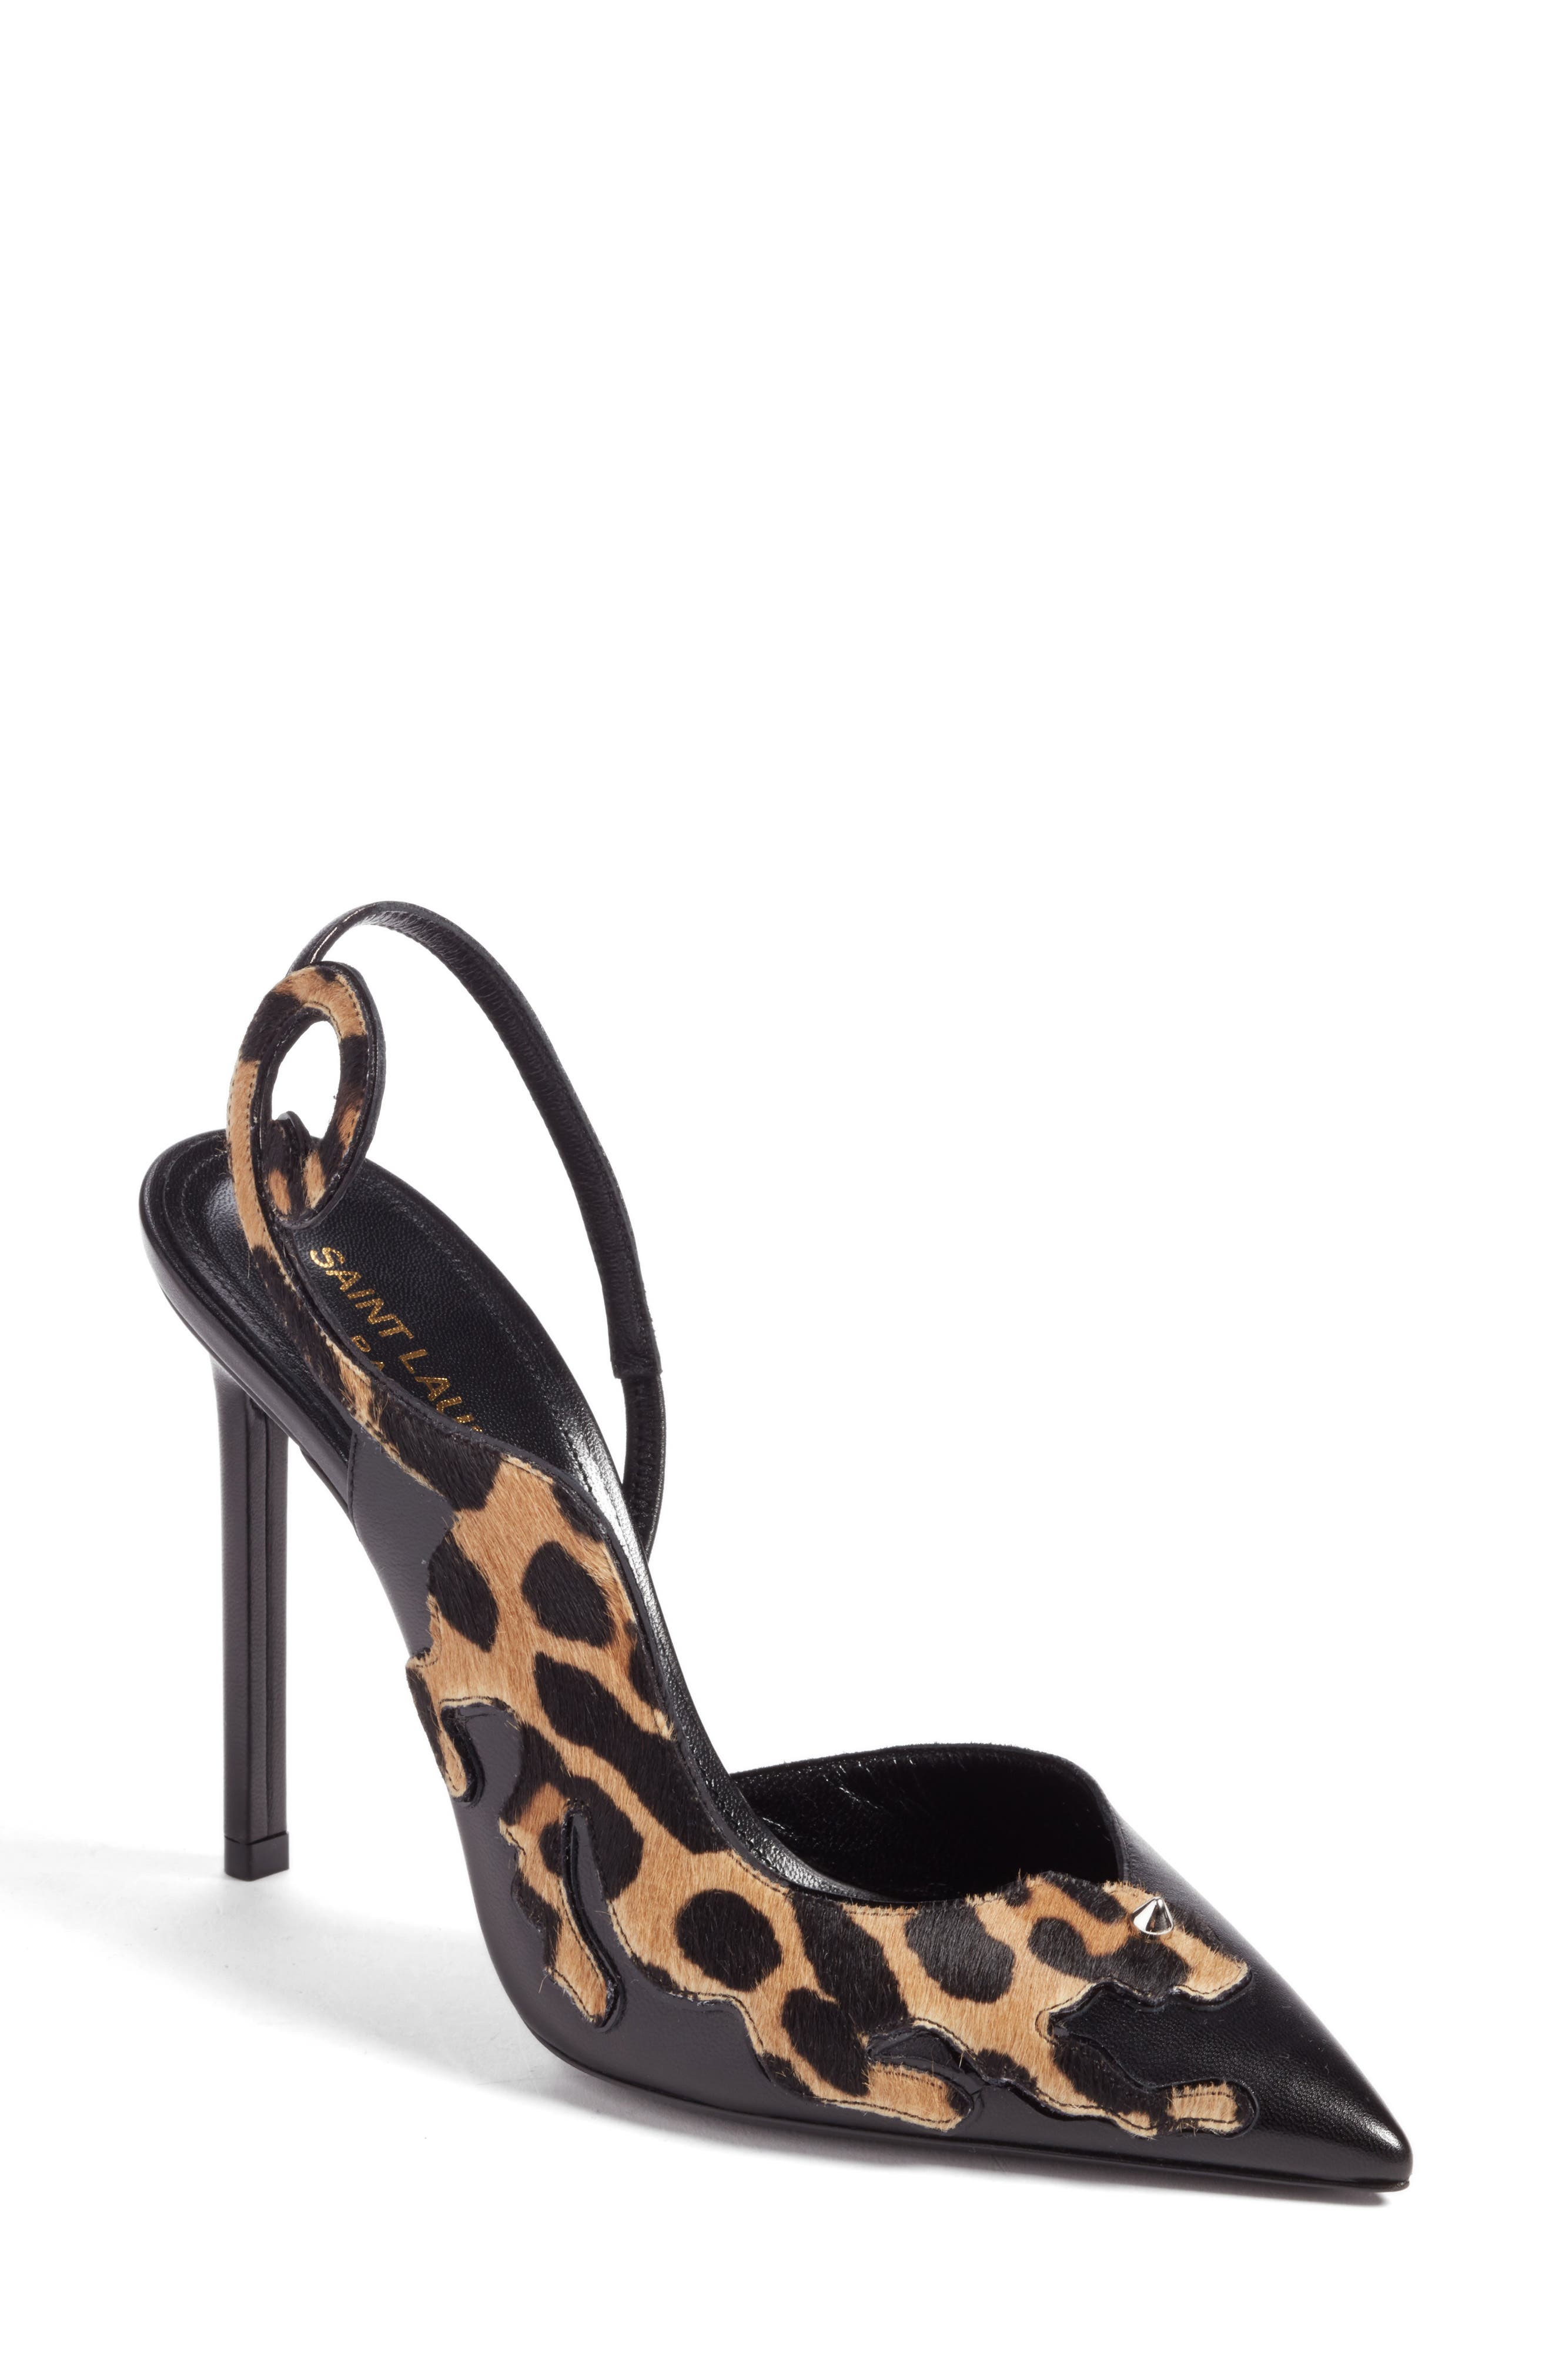 Saint Laurent Anya Half d'Orsay Pump (Women)